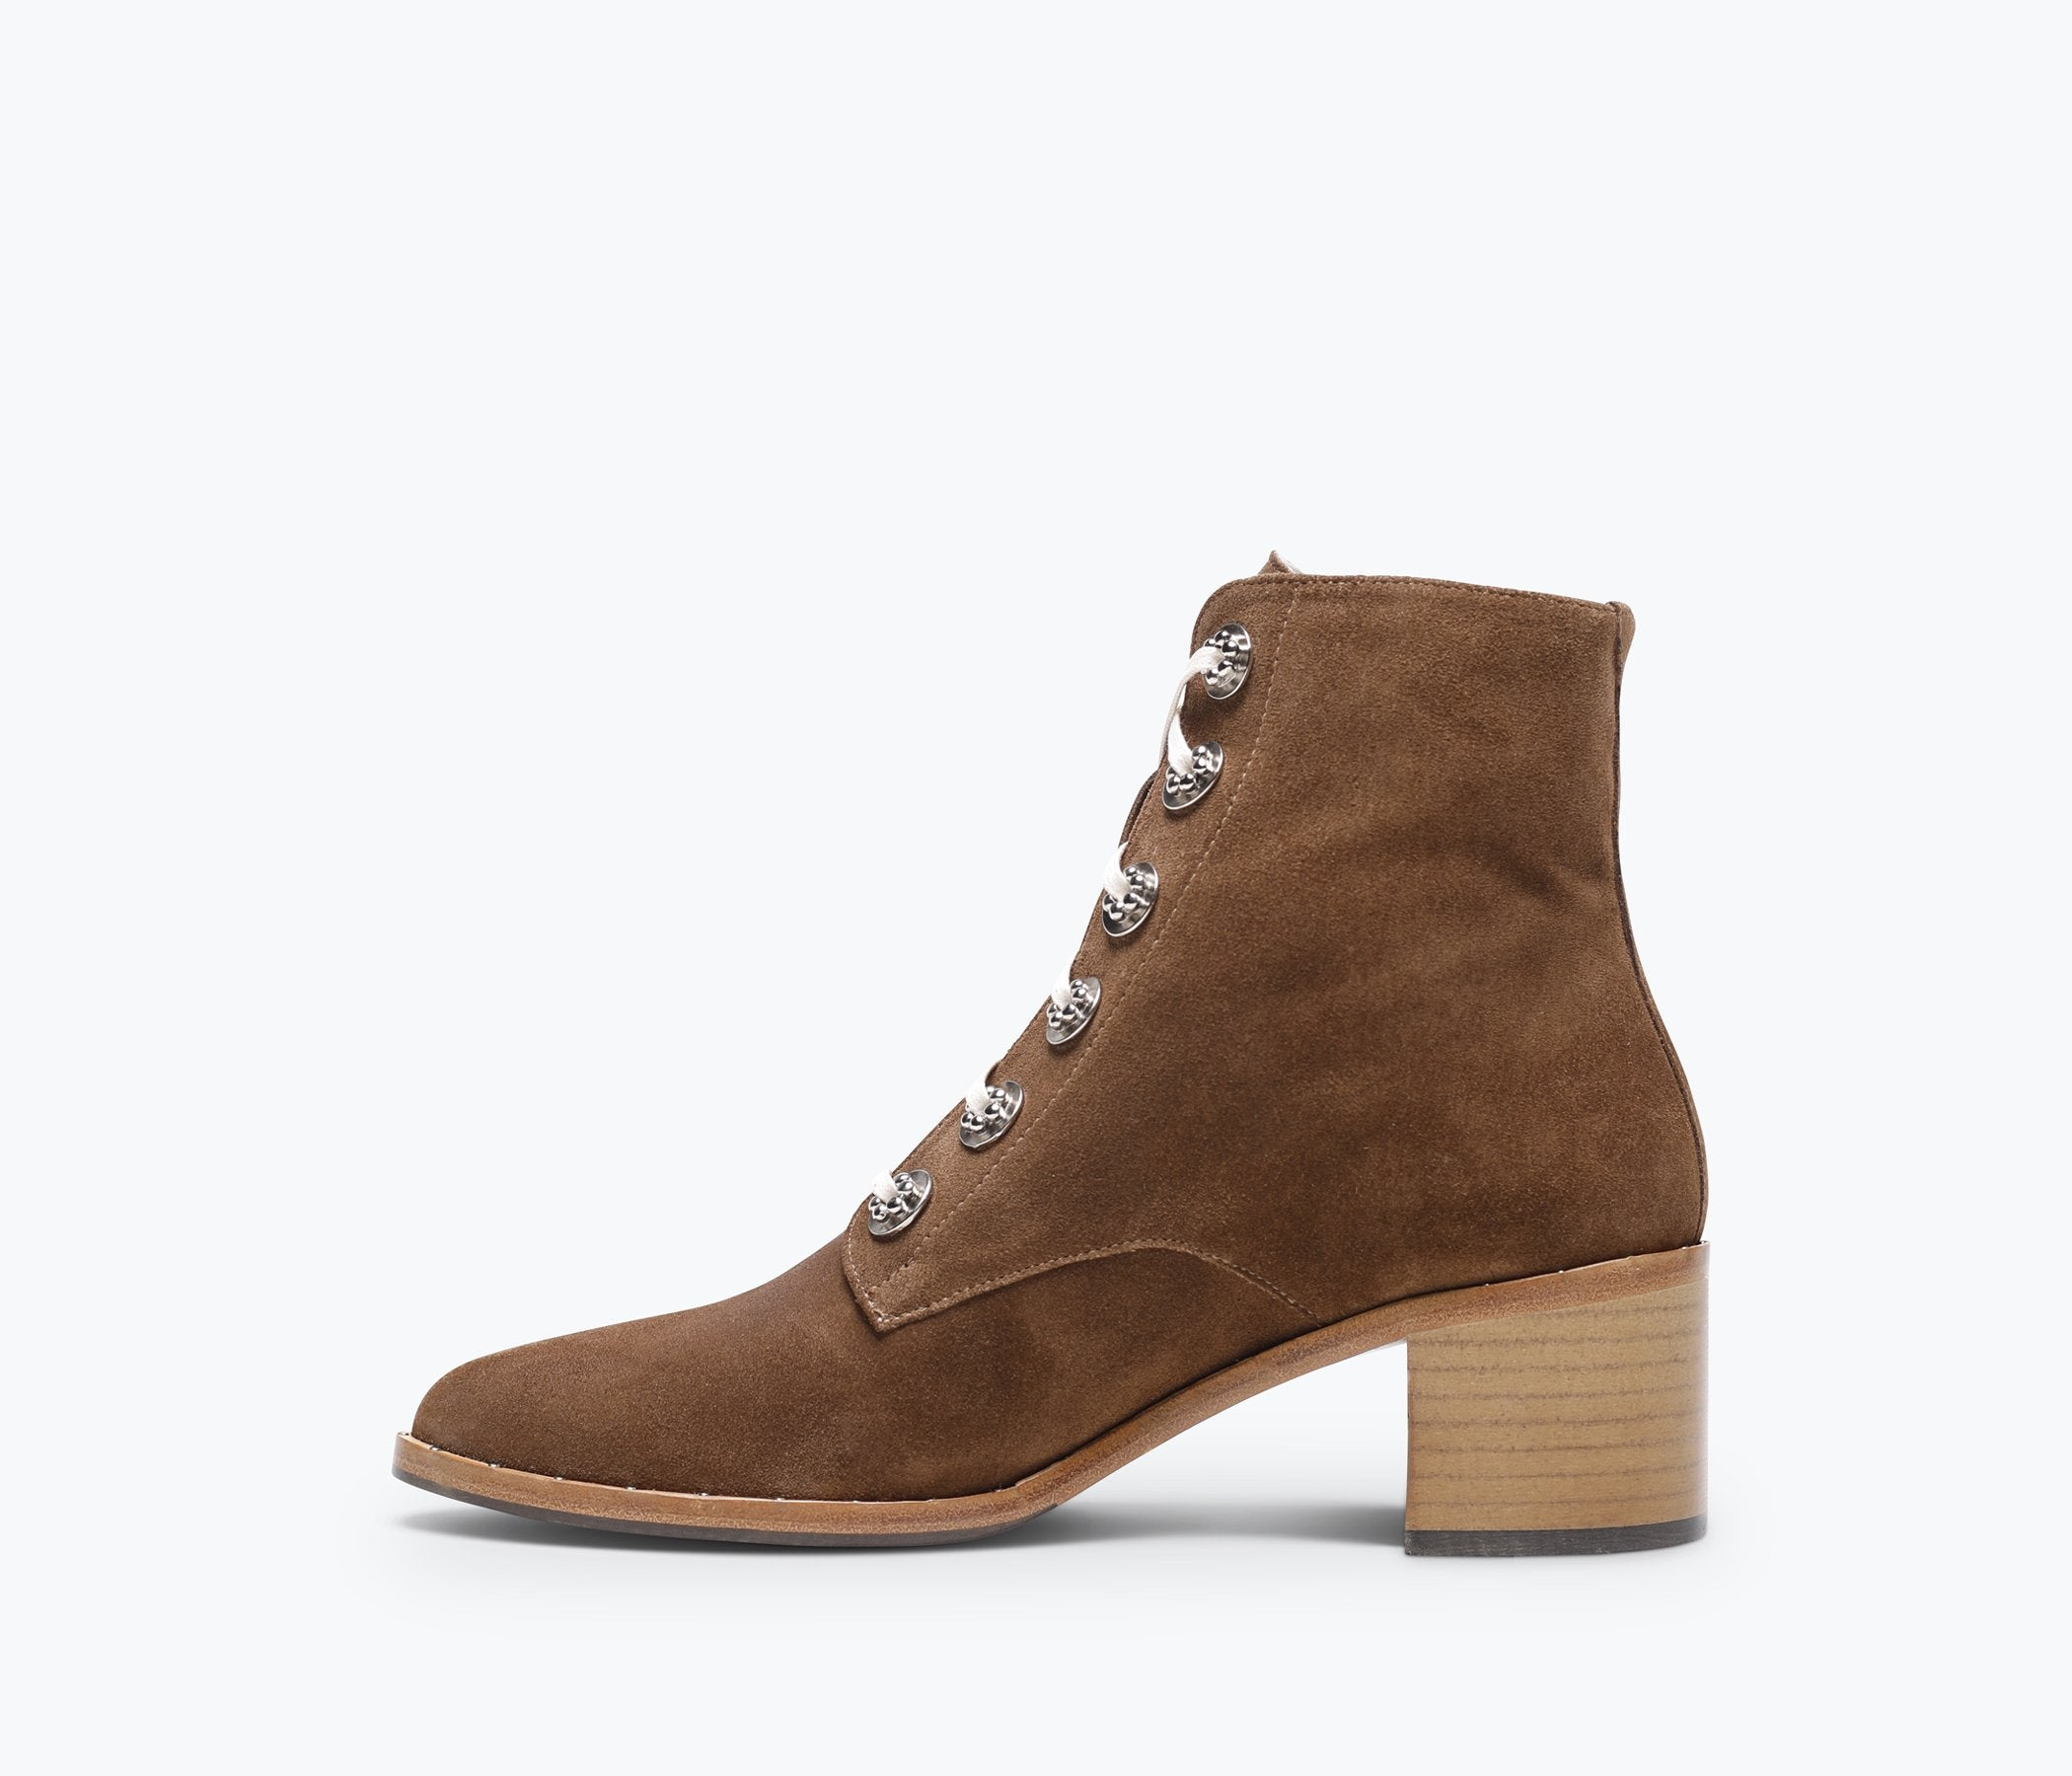 ACE LACE UP BOOT, [product-type] - FREDA SALVADOR Power Shoes for Power Women